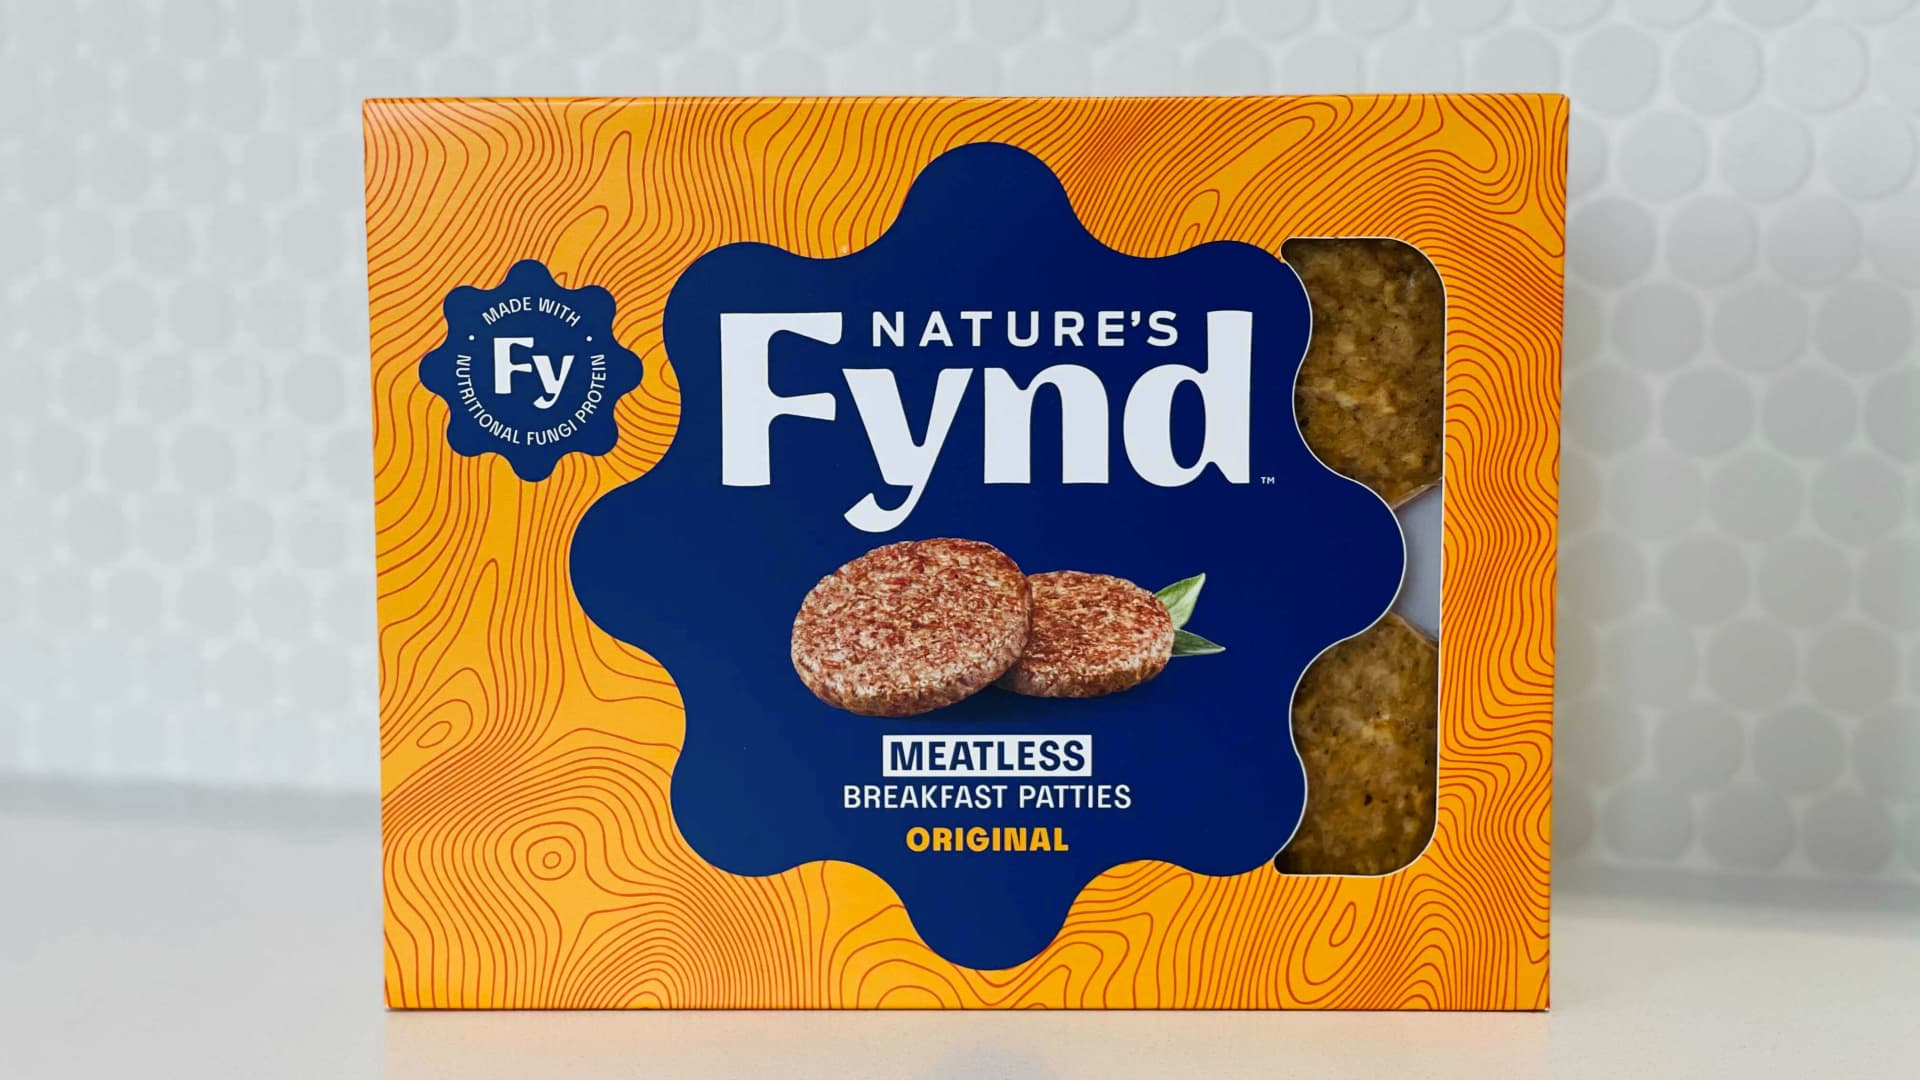 With $158 million in funding from Jeff Bezos, Bill Gates, Al Gore and other investors, Nature's Fynd meatless breakfast patties and hamburgers, dairy-free cream cheese and yogurt, and nuggets, minus chicken, are scheduled to hit grocers' shelves later this year.